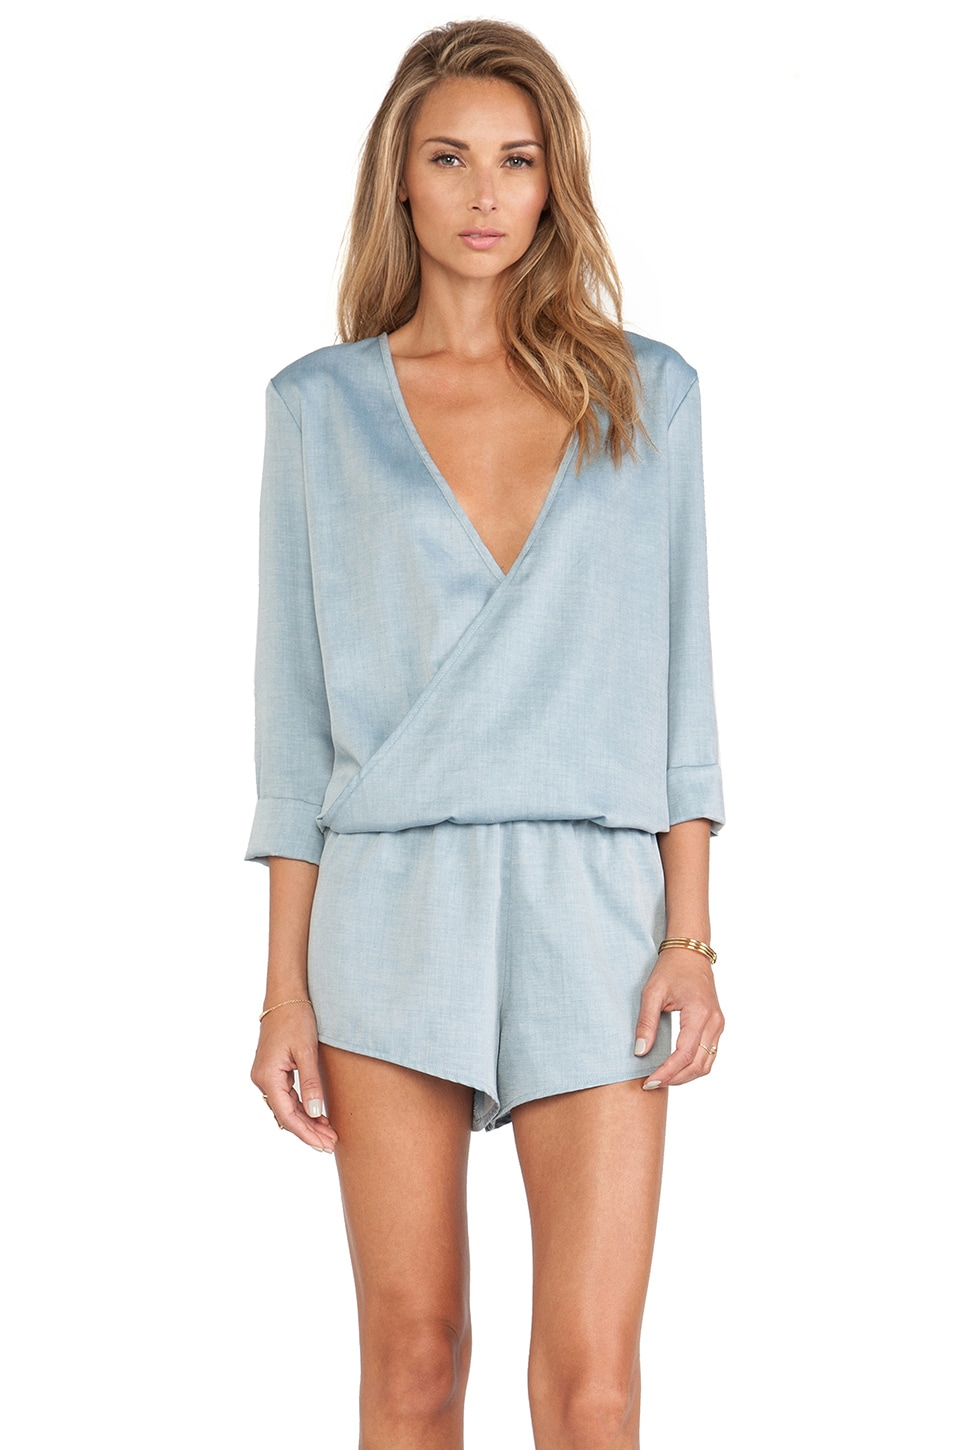 MERRITT CHARLES Fonda Long Sleeve Romper in Denim